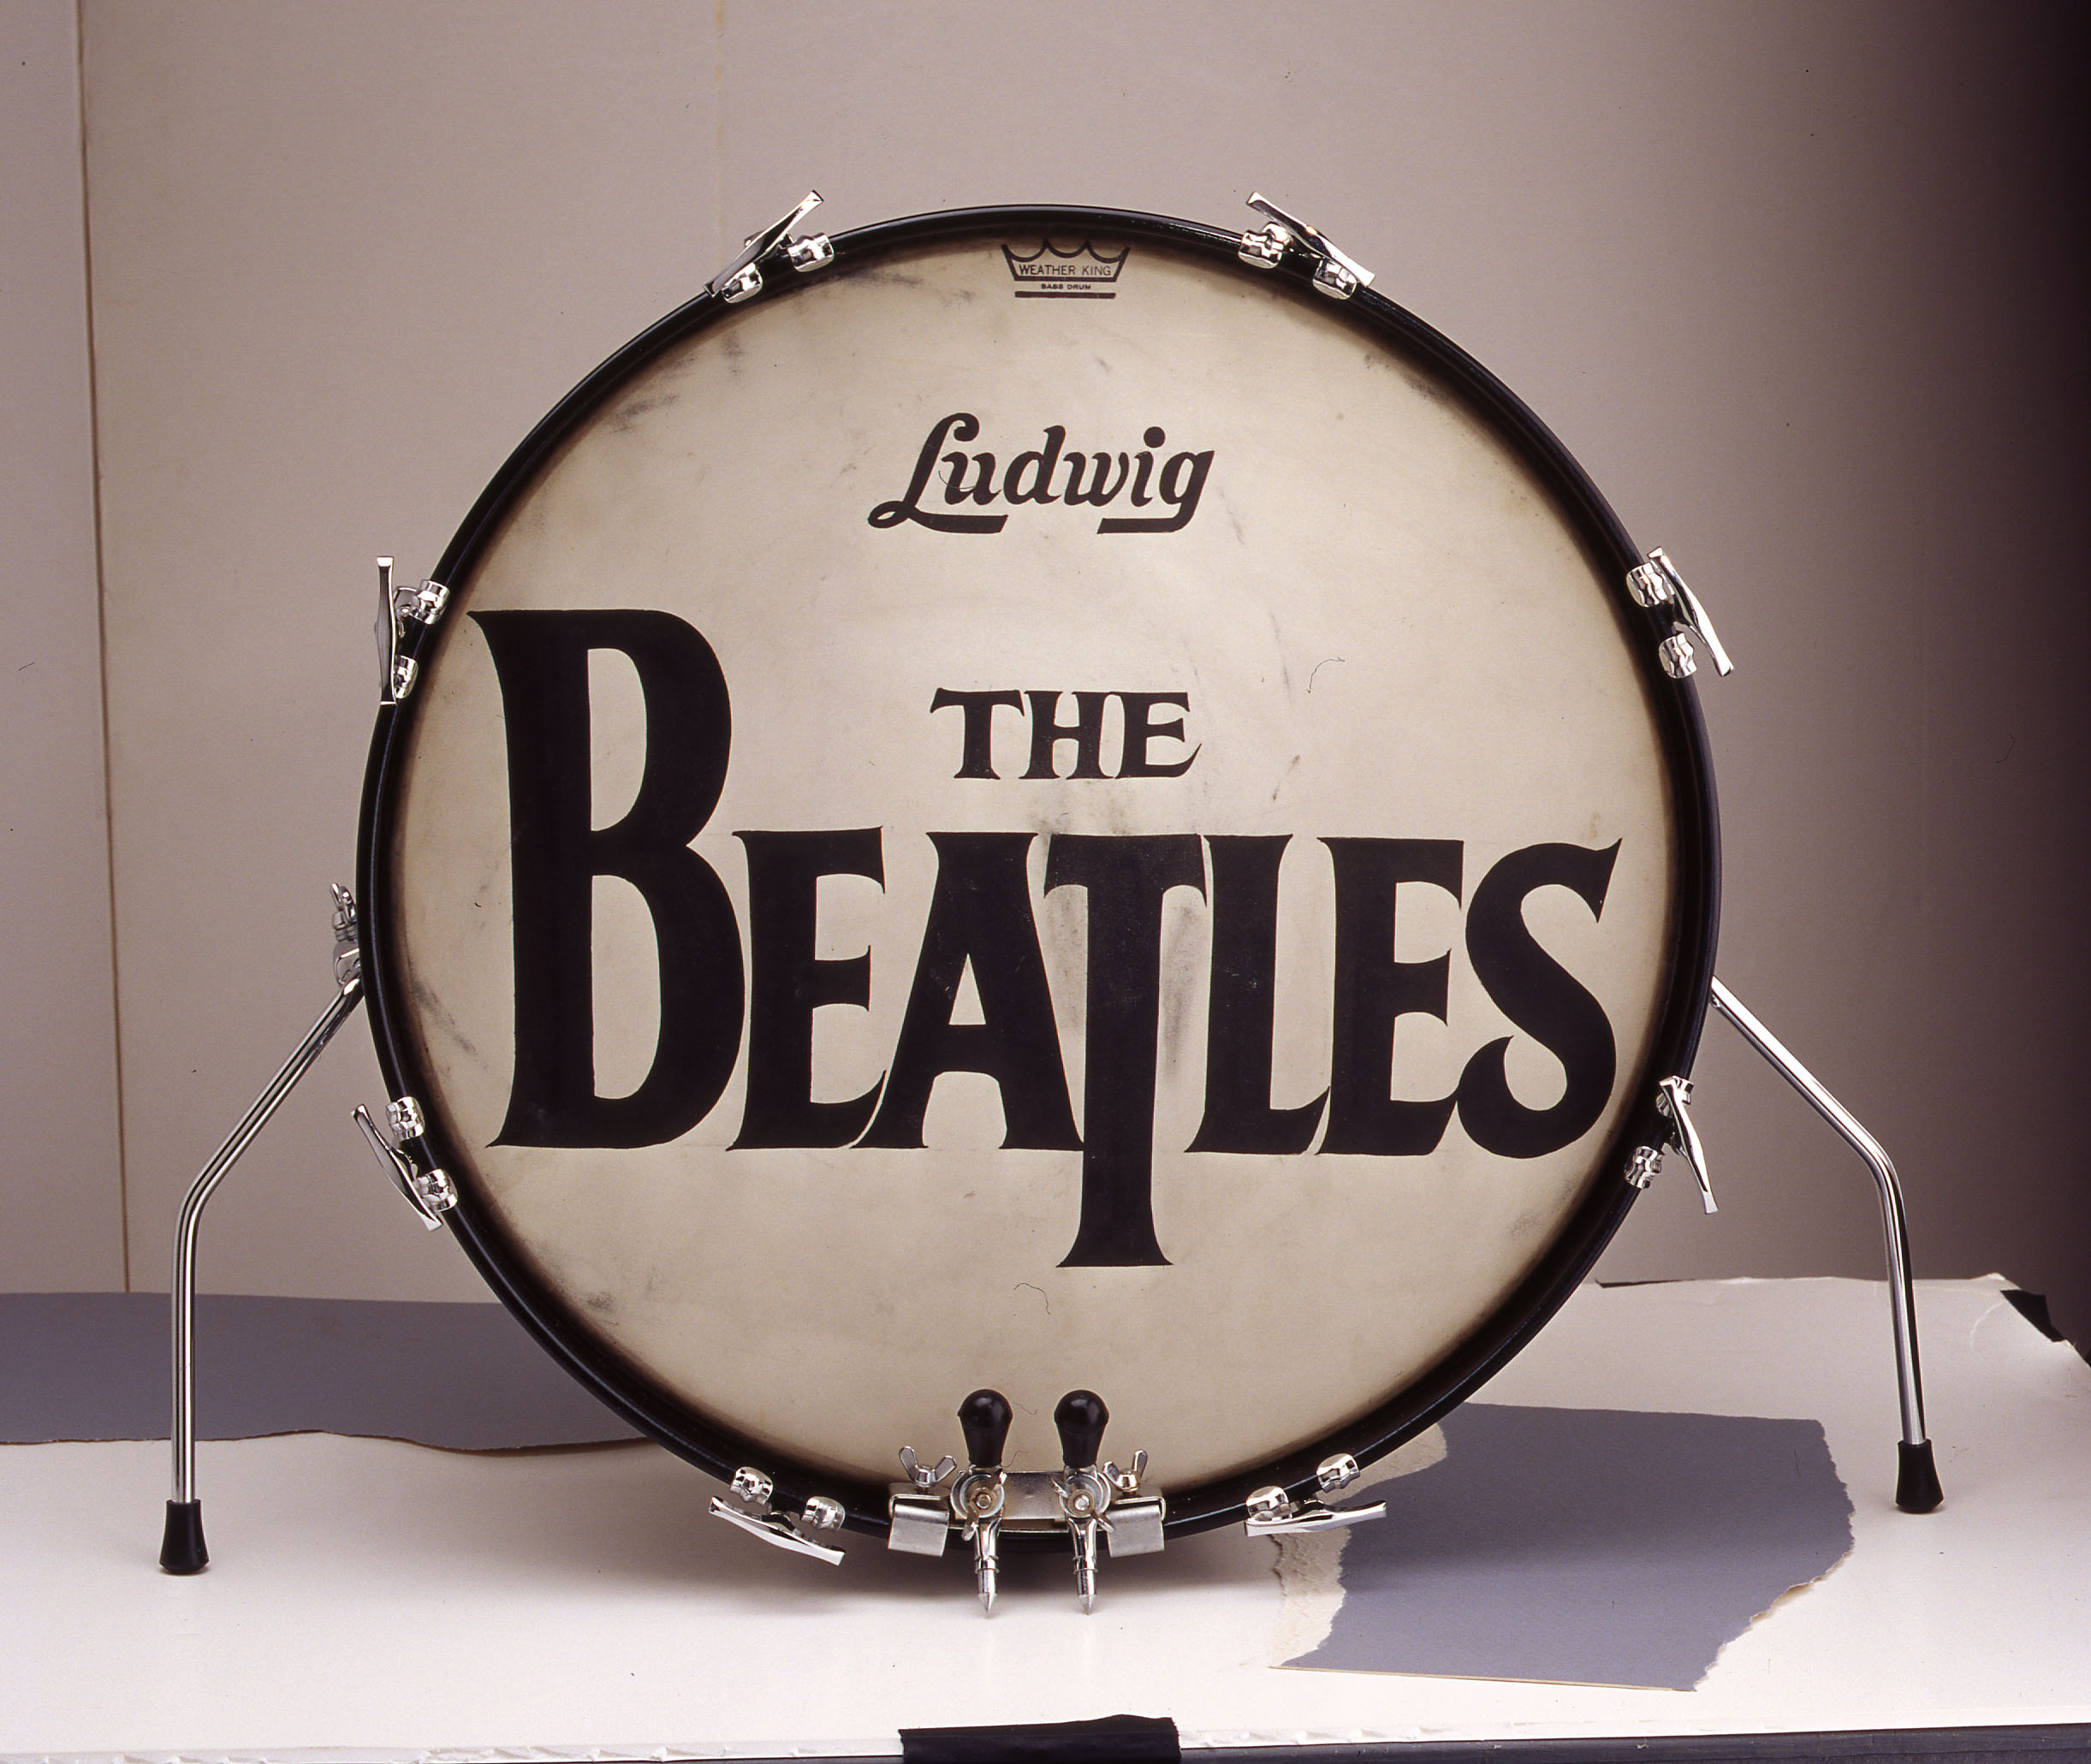 Bass Drum Head Sold For 21 Million